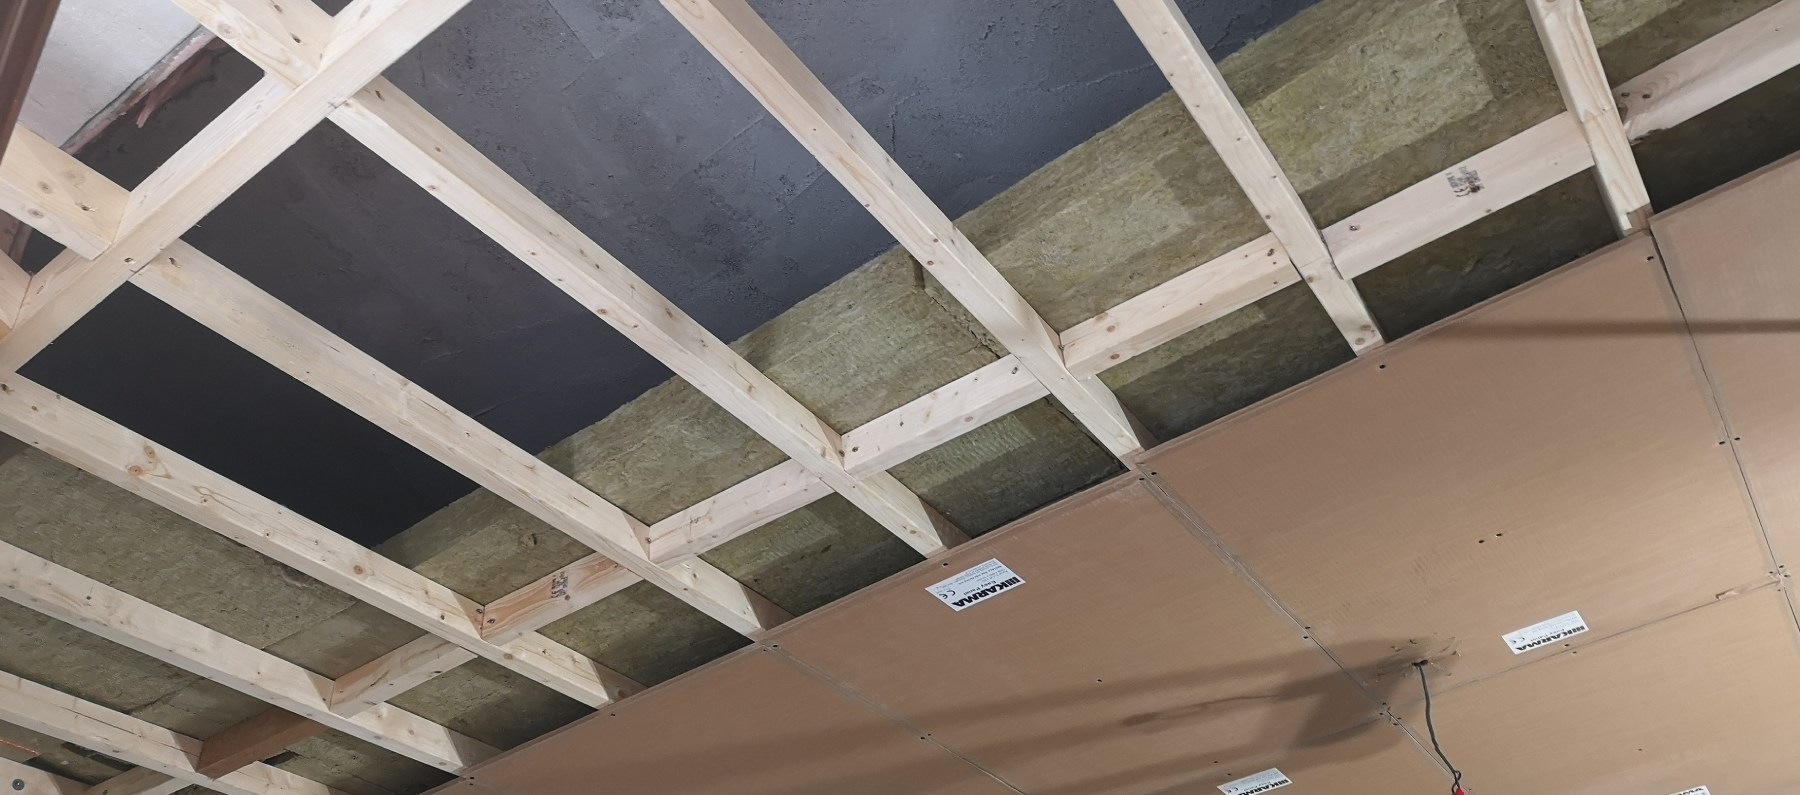 image of some ceiling joists with heavy acoustic insulation and soundproof board